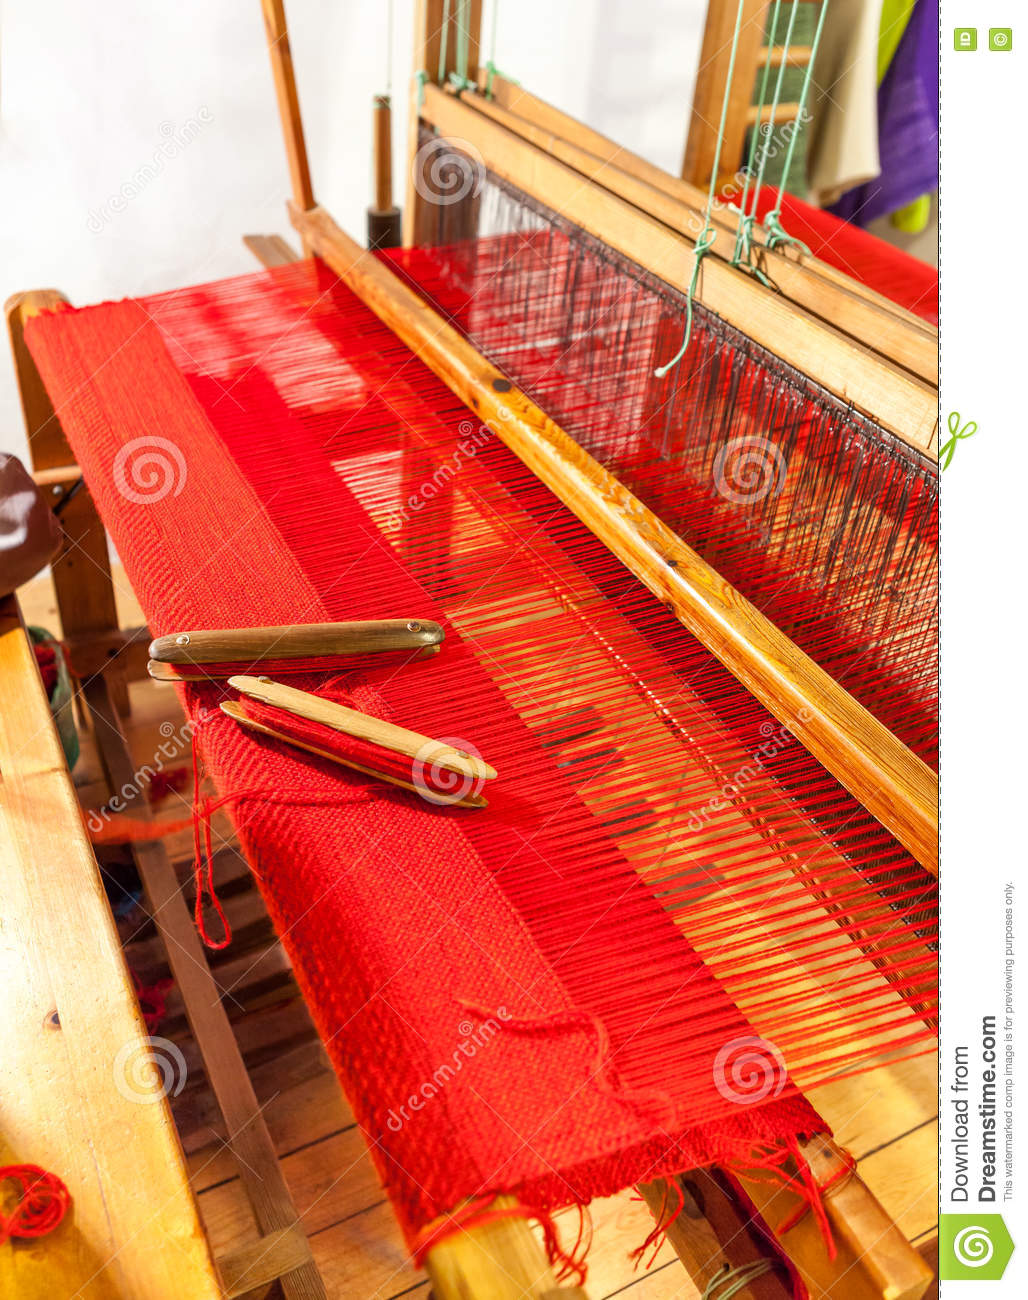 Wooden Weaving Shuttle On An Old Manual Loom. Stock Photo ...